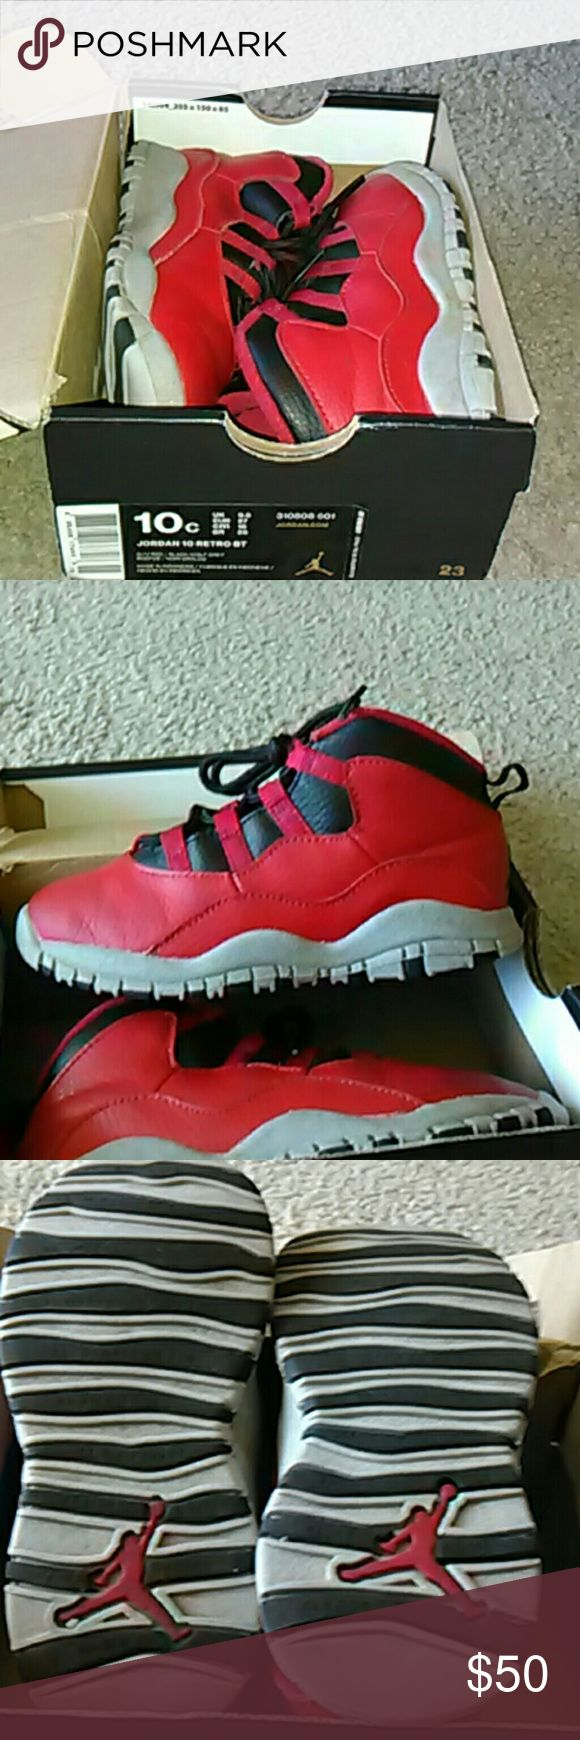 Jordan retro b.o.b 10s Bull's on Broadway 10s looking for some lucky little guy comes with og box and all Jordan Shoes Sneakers